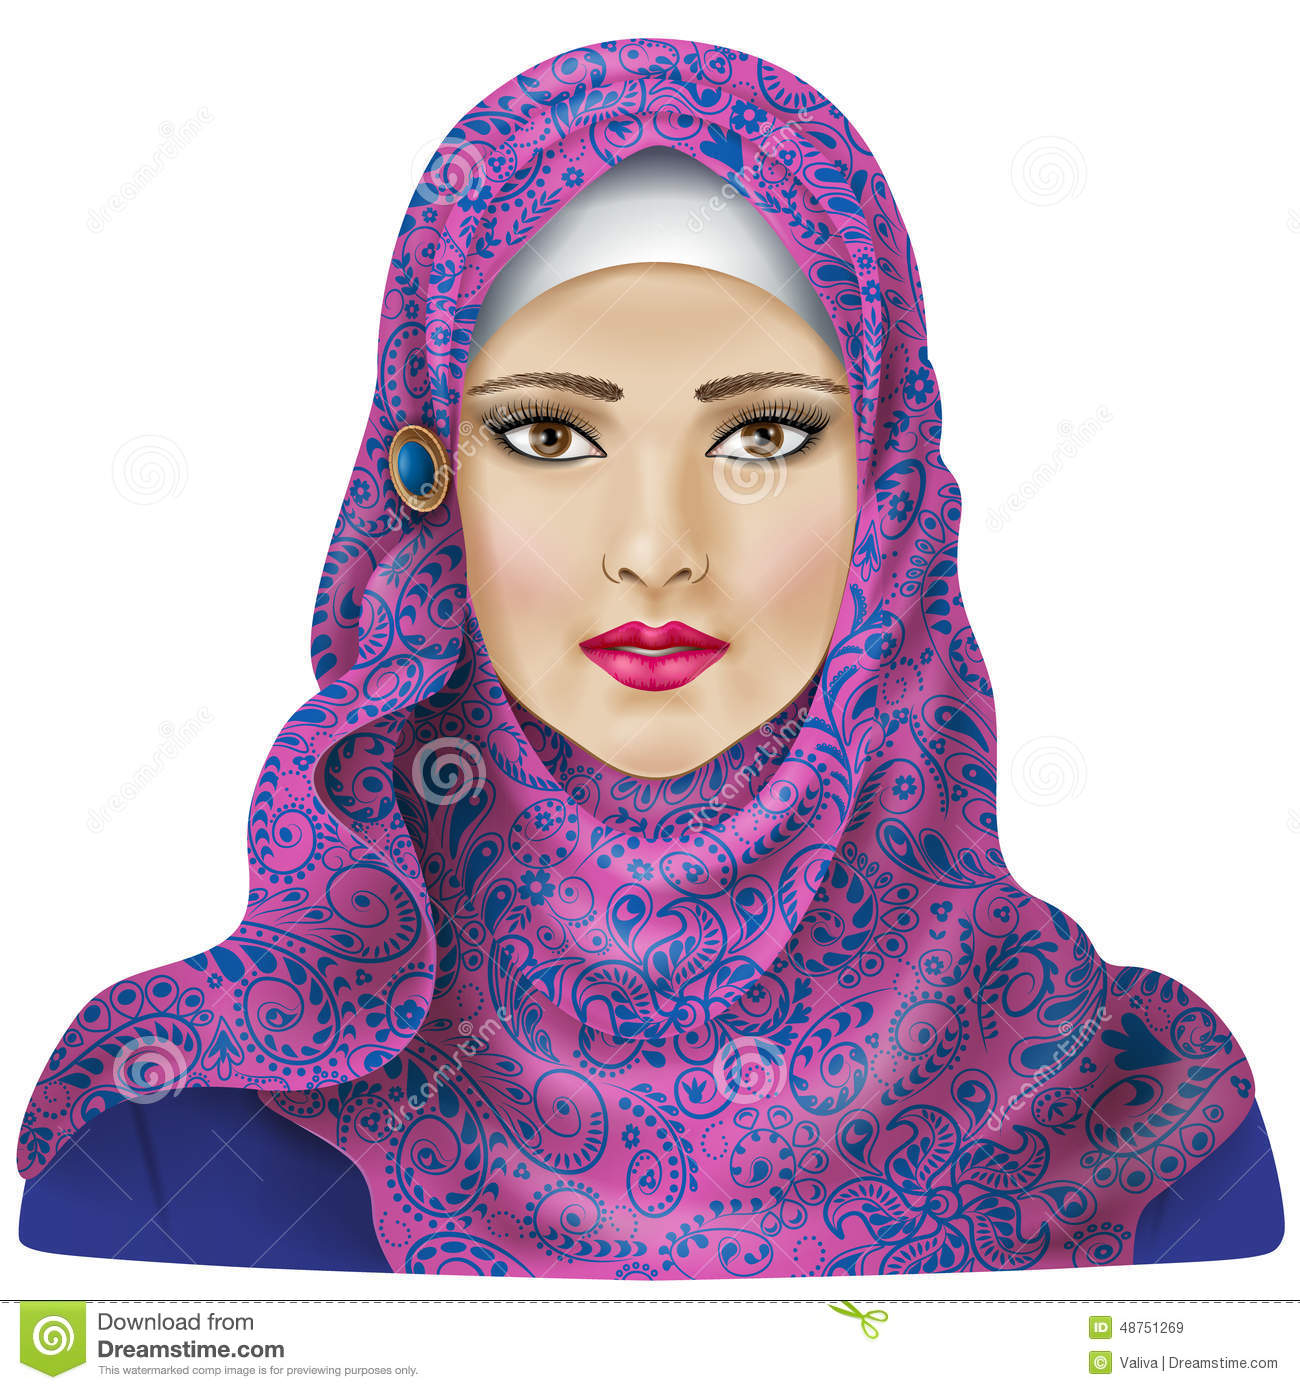 blue eye muslim single men Meet muslim american women with blue eyes looking for marriage and who is muslim sunni , who has good manners , single with no children i have one blue eye.